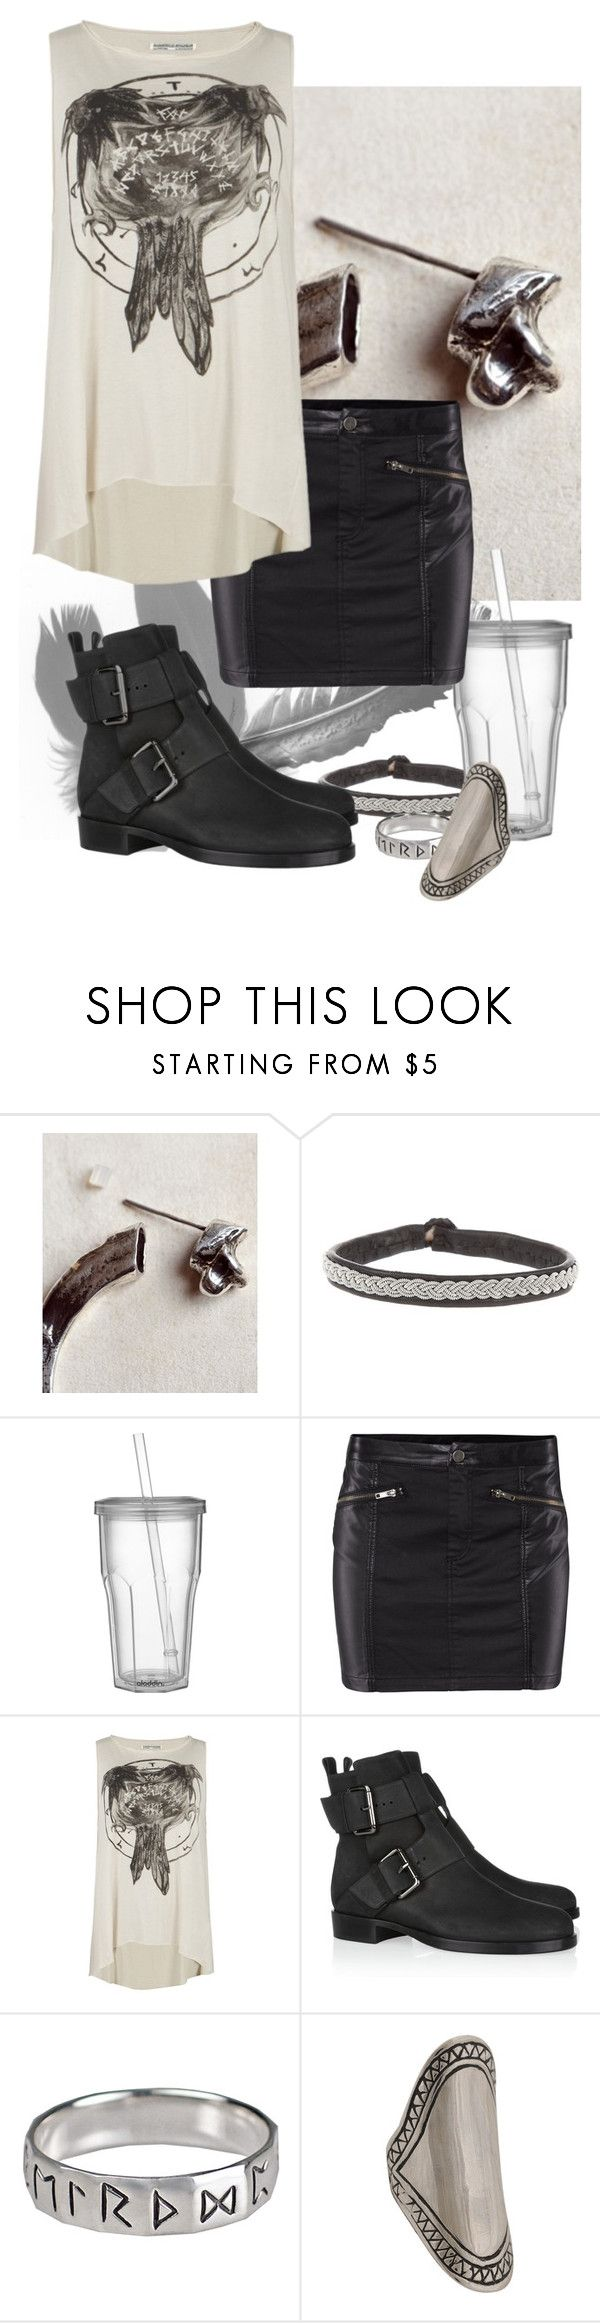 """""""Breathe us in, slowly"""" by occultette ❤ liked on Polyvore featuring Pamela Love, Hanna Wallmark, Crate and Barrel, H&M, AllSaints, Pierre Hardy, Rune NYC, Forever 21, leather skirts and buckle boots"""